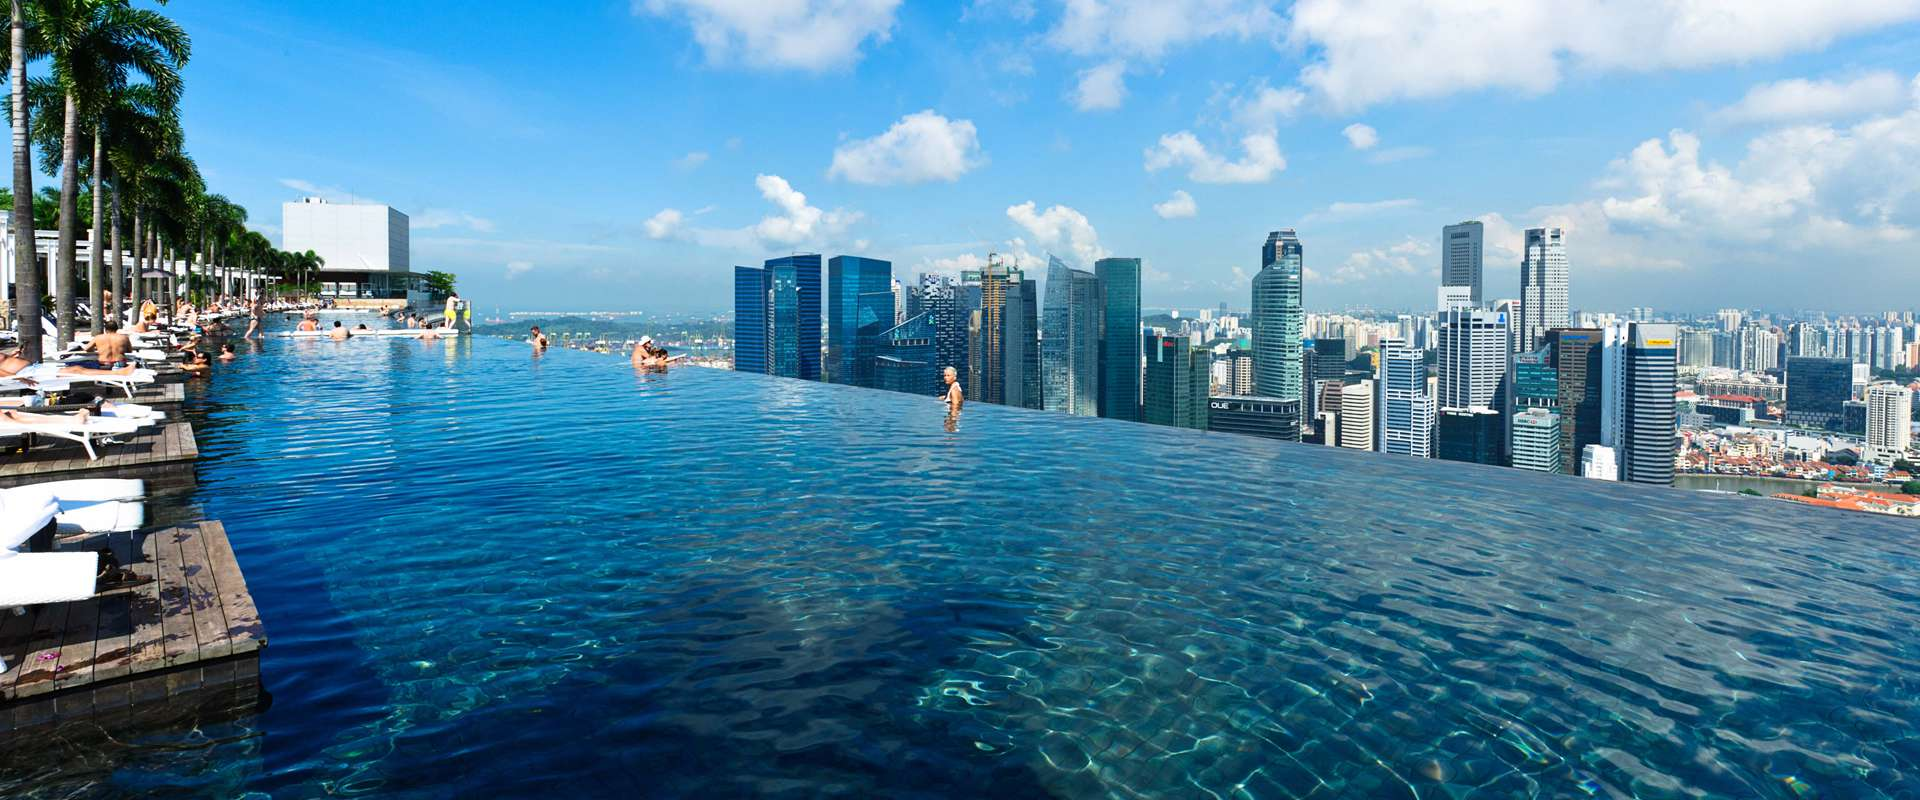 World S Largest Infinity Pool Singapore Book Of Records